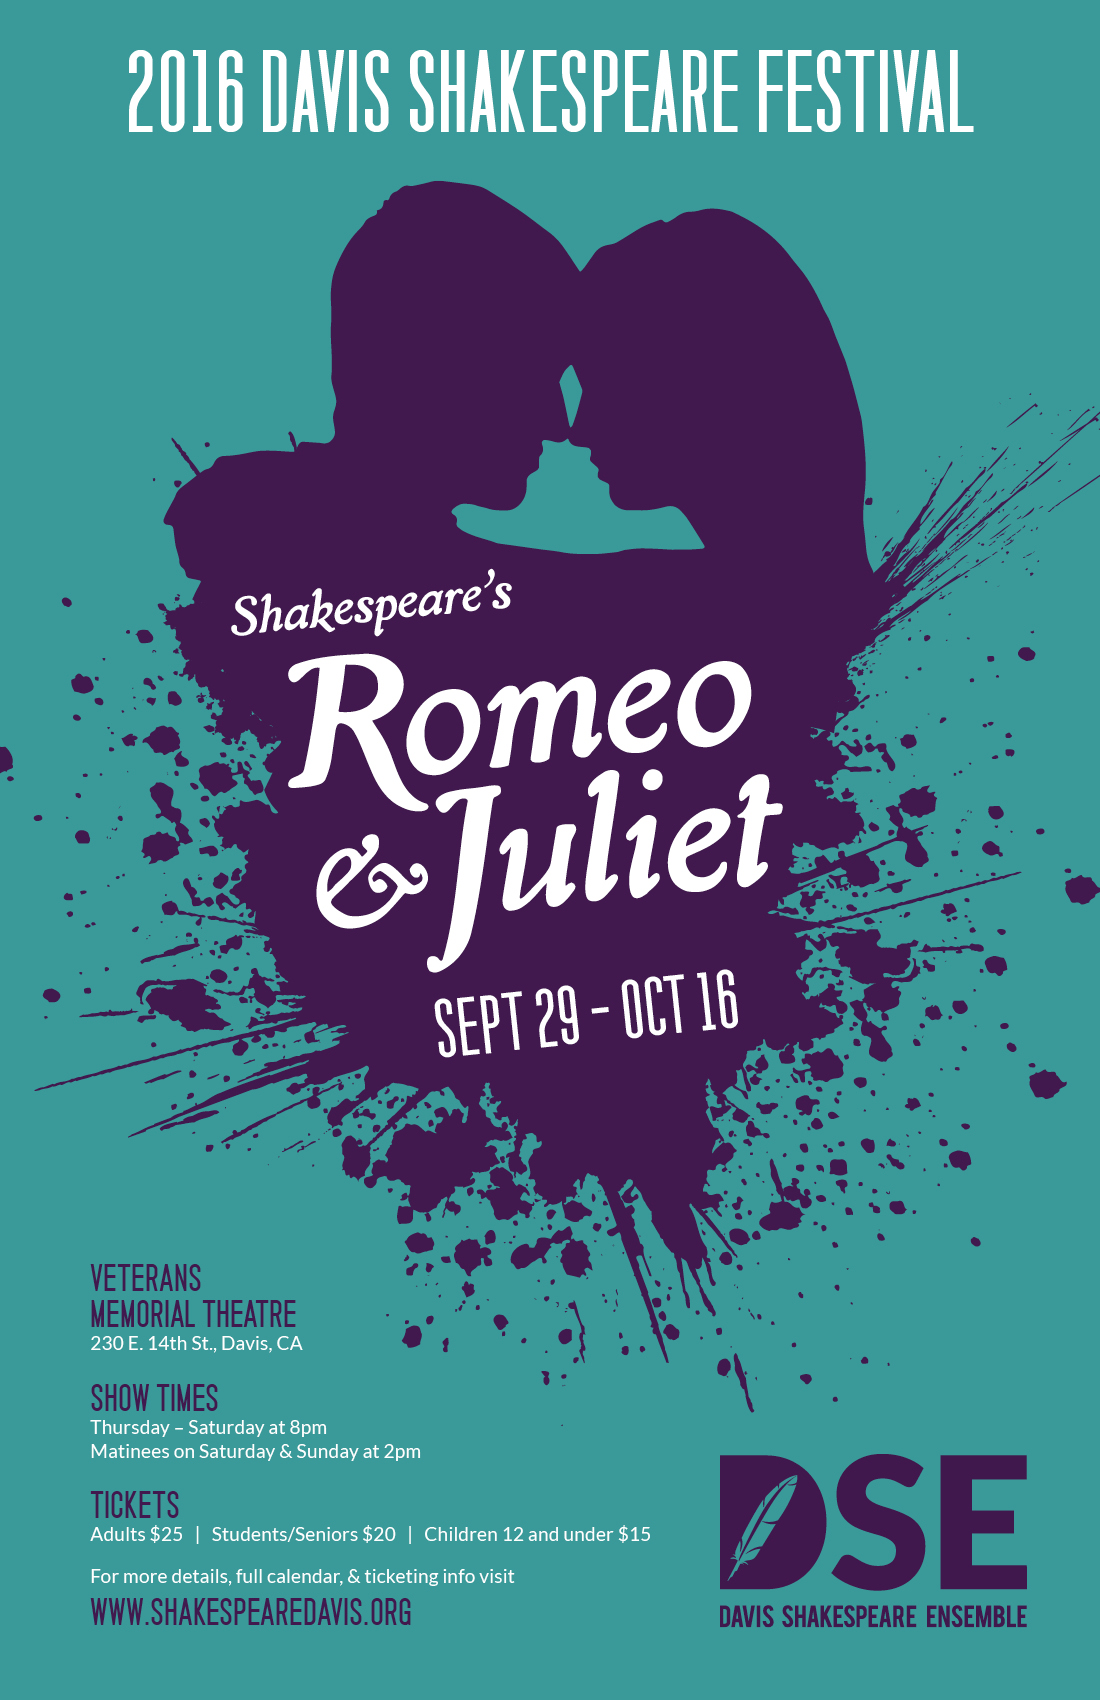 Romeo And Juliet Presented By Davis Shakespeare Ensemble